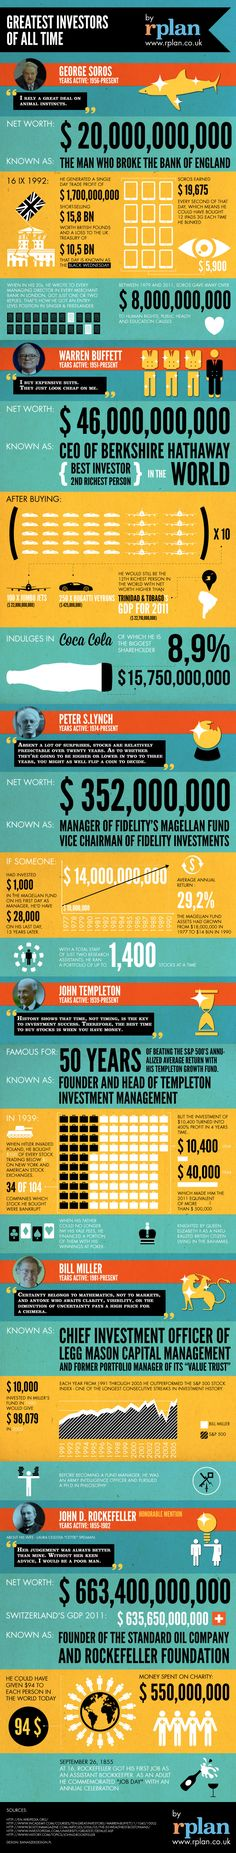 #Infographic: Greatest investors of all time via @Manshu